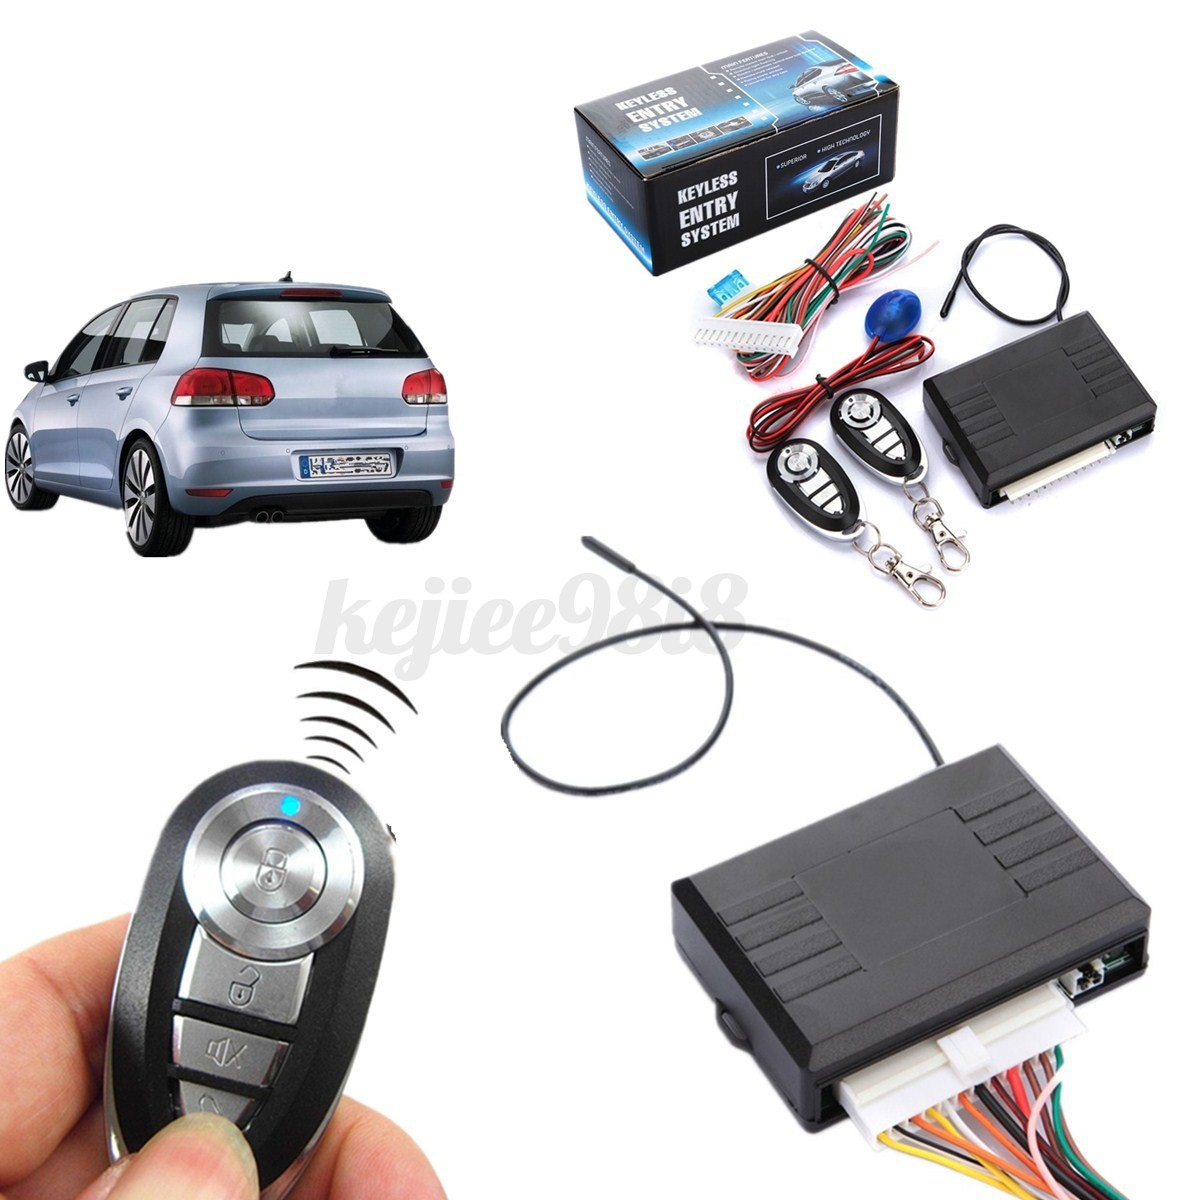 Car remote central kit security door locking vehicle for Keyless entry system